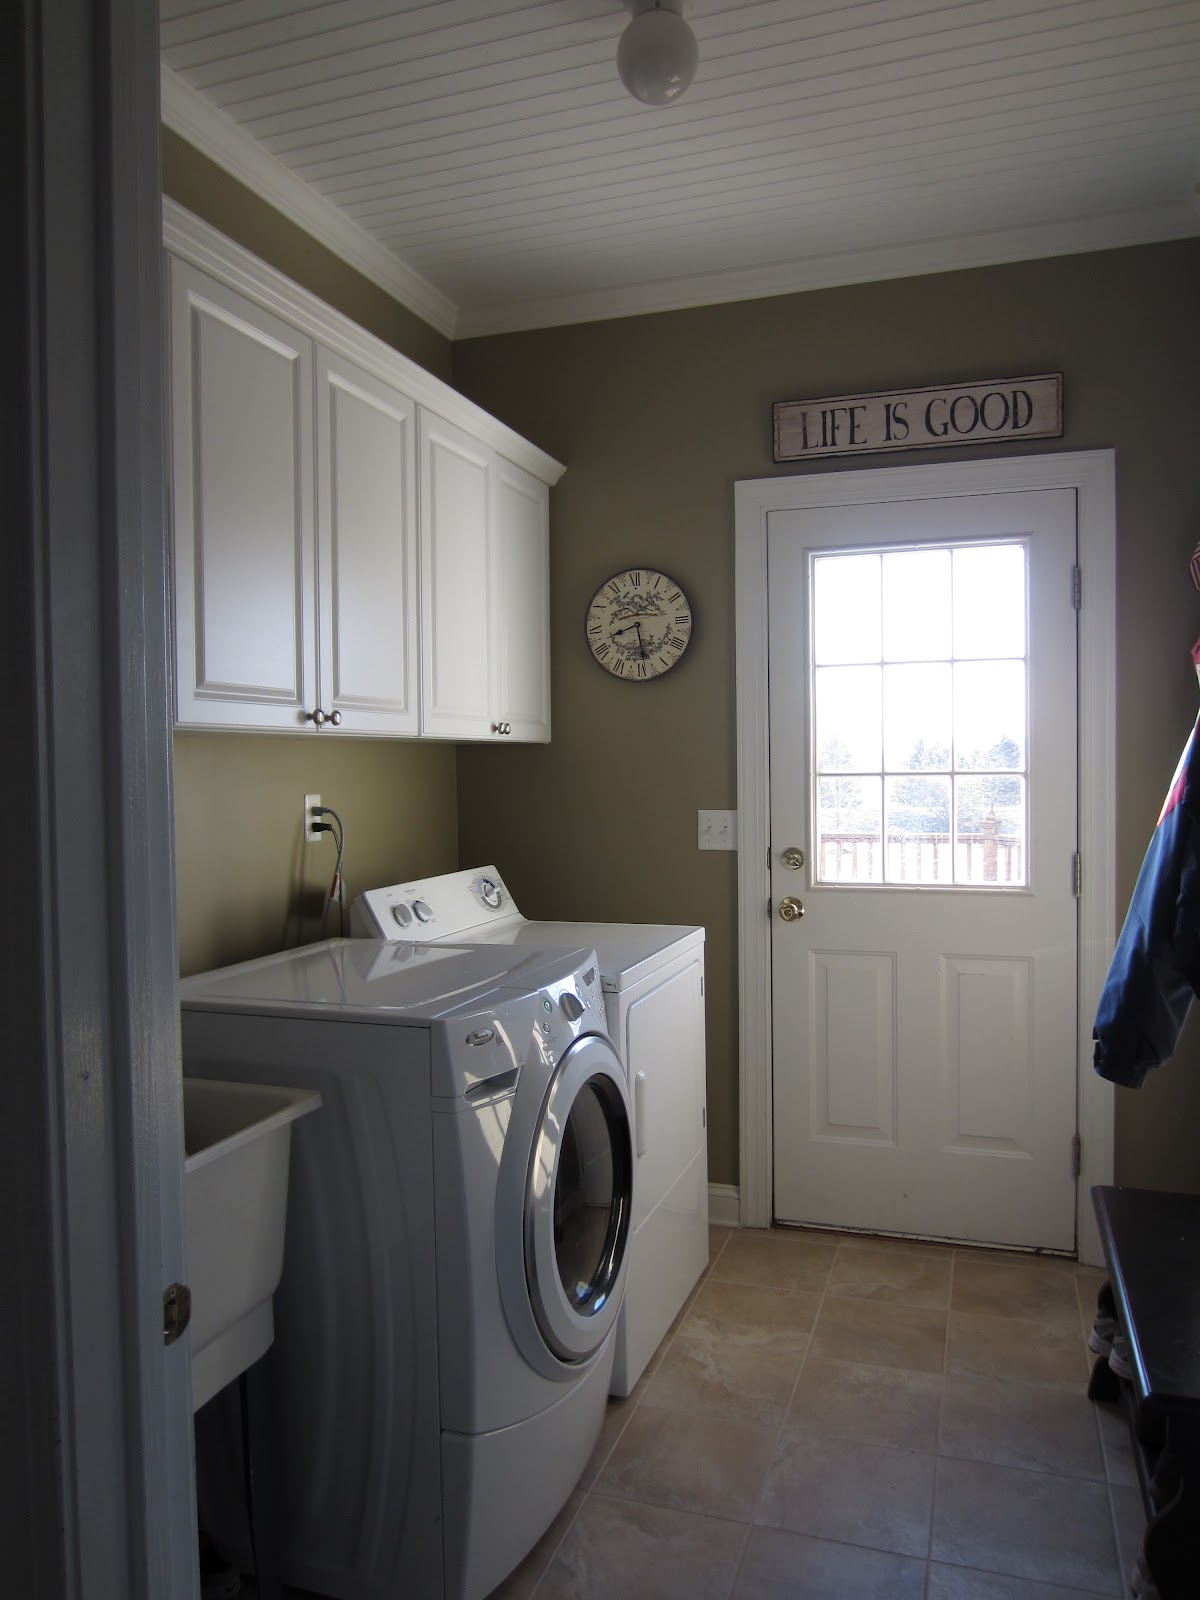 Beadboard Ceiling in the Laundry Room - Calypso in the Country Blog